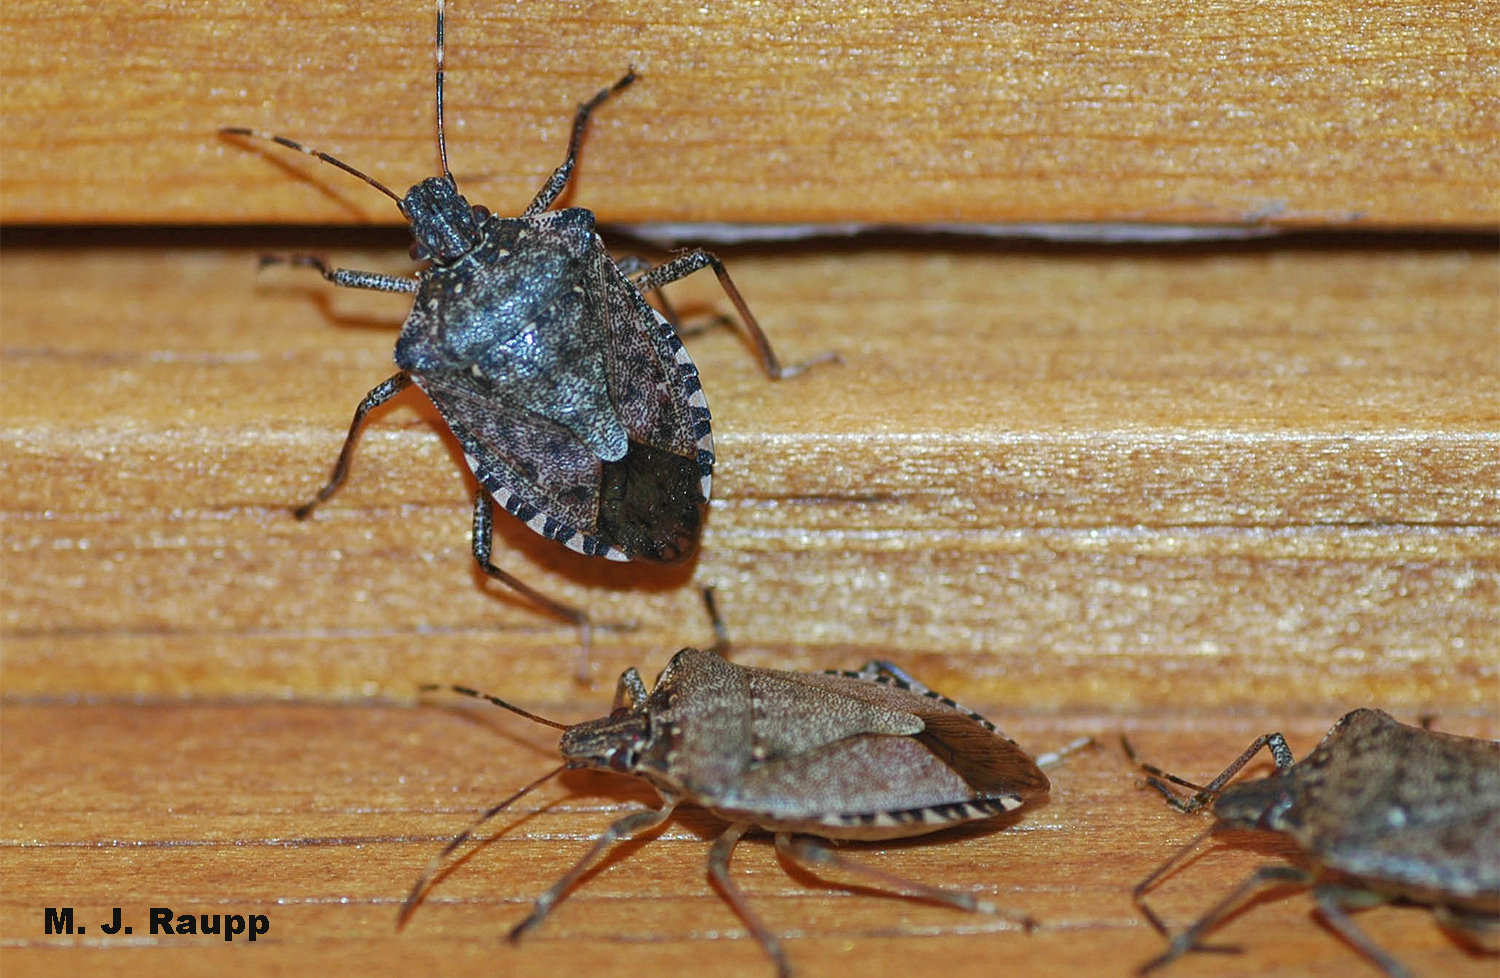 After a good year of plundering crops and fruit and dodging predators and parasitoids, numbers of stink bugs invading homes is on the rise.